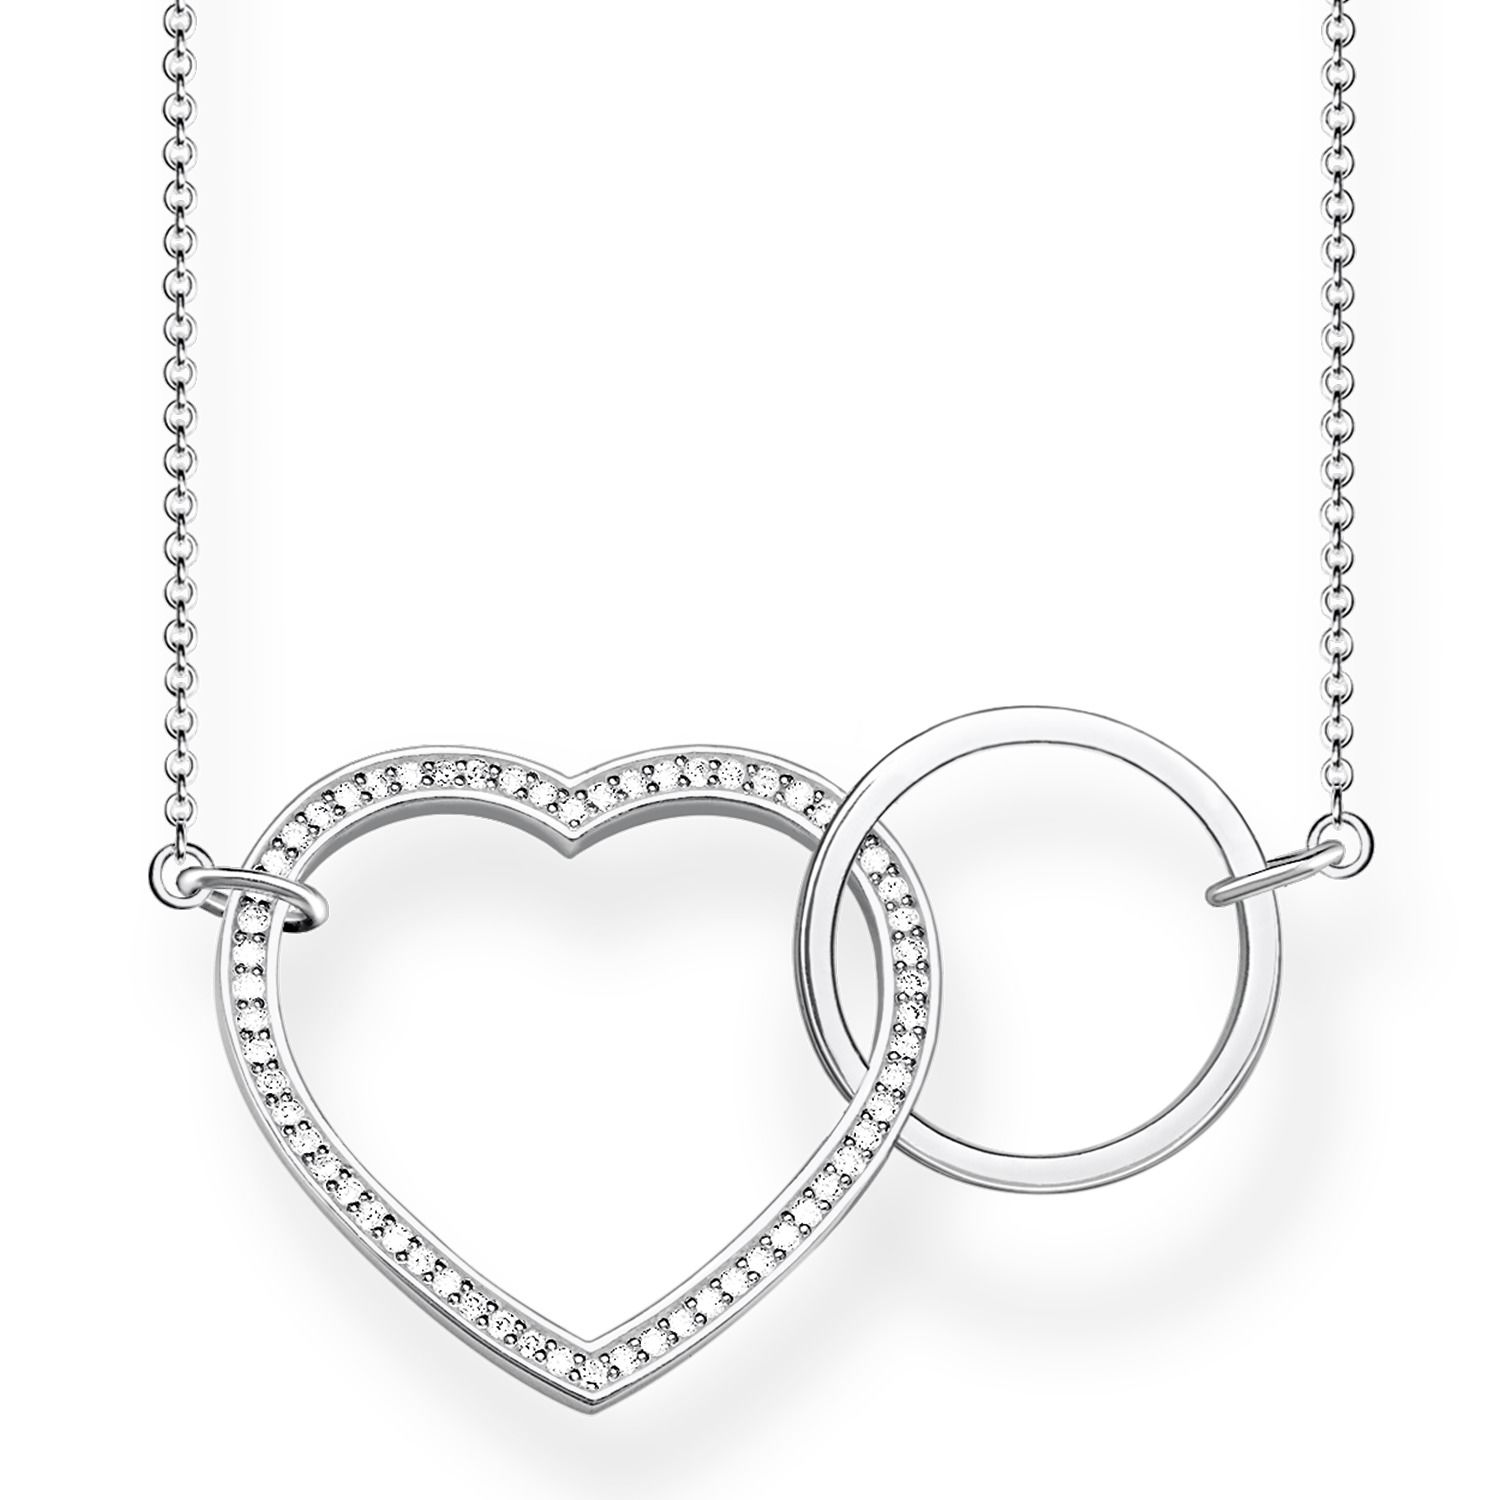 17e49faad Thomas Sabo – Glam & Soul Together Heart Sterling Silver Necklace Large